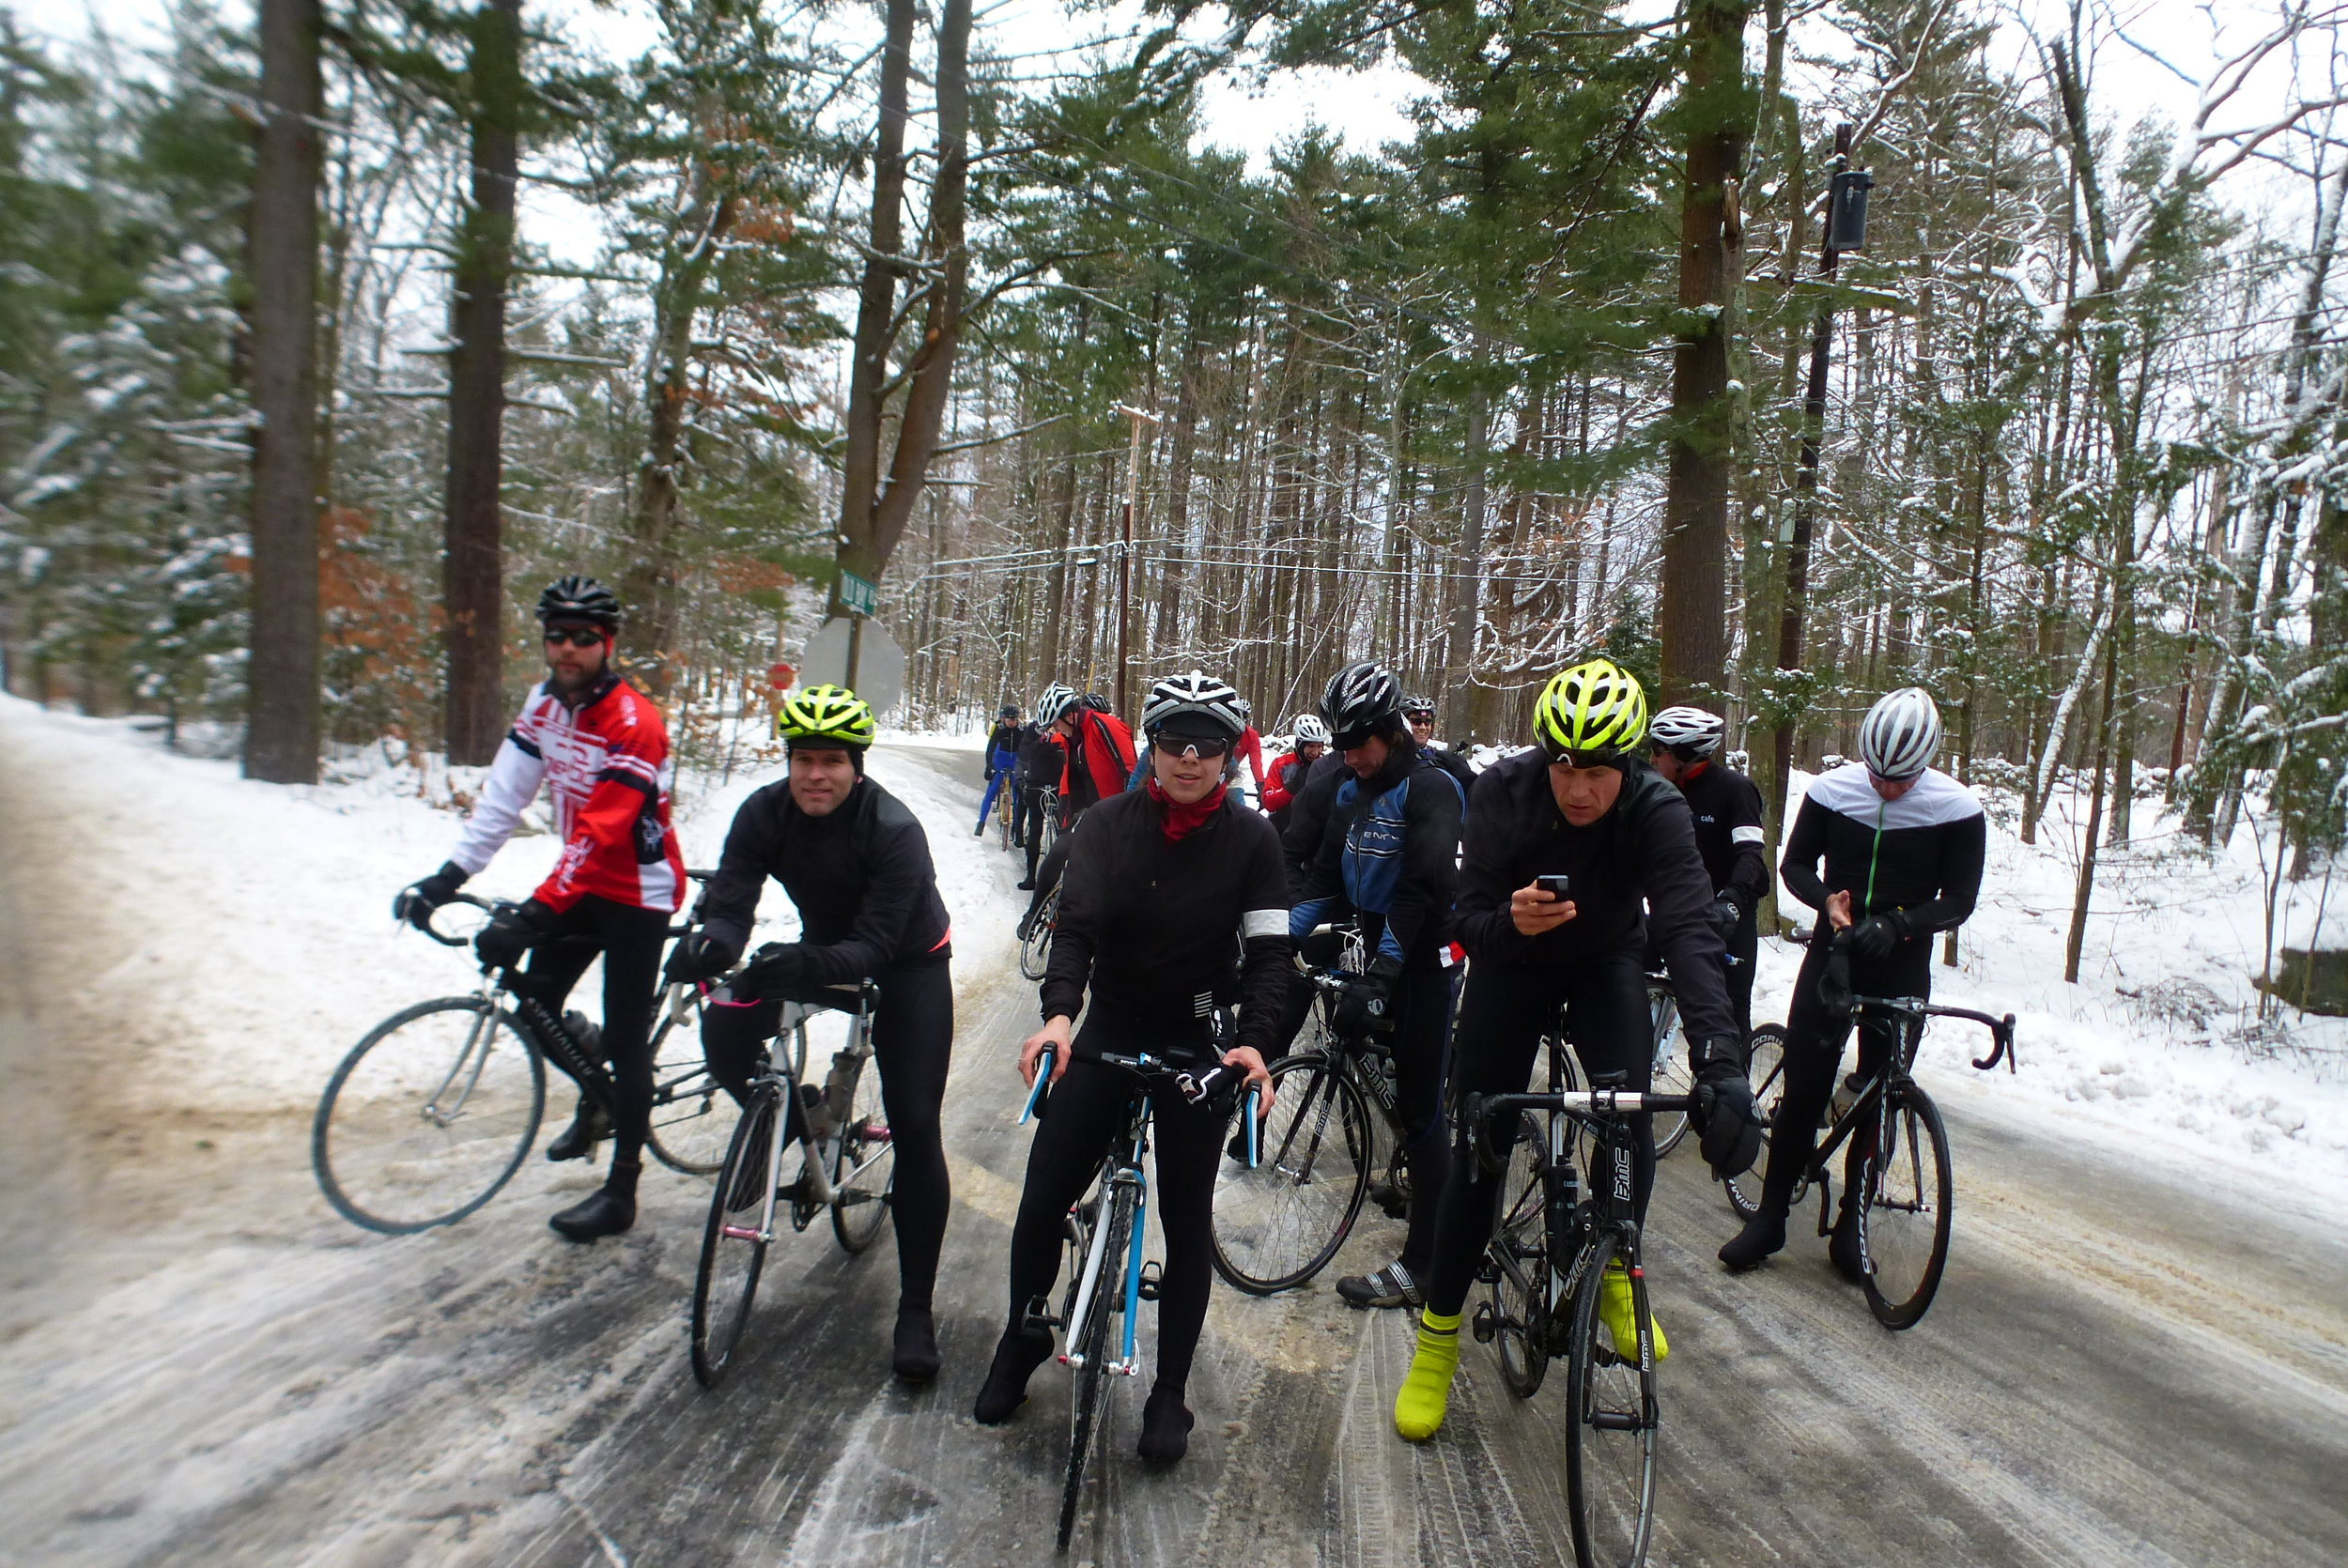 Saturday big group ride with Rapha's Rich Bravo & Derrick Lewis - Photo by Neil McInnis